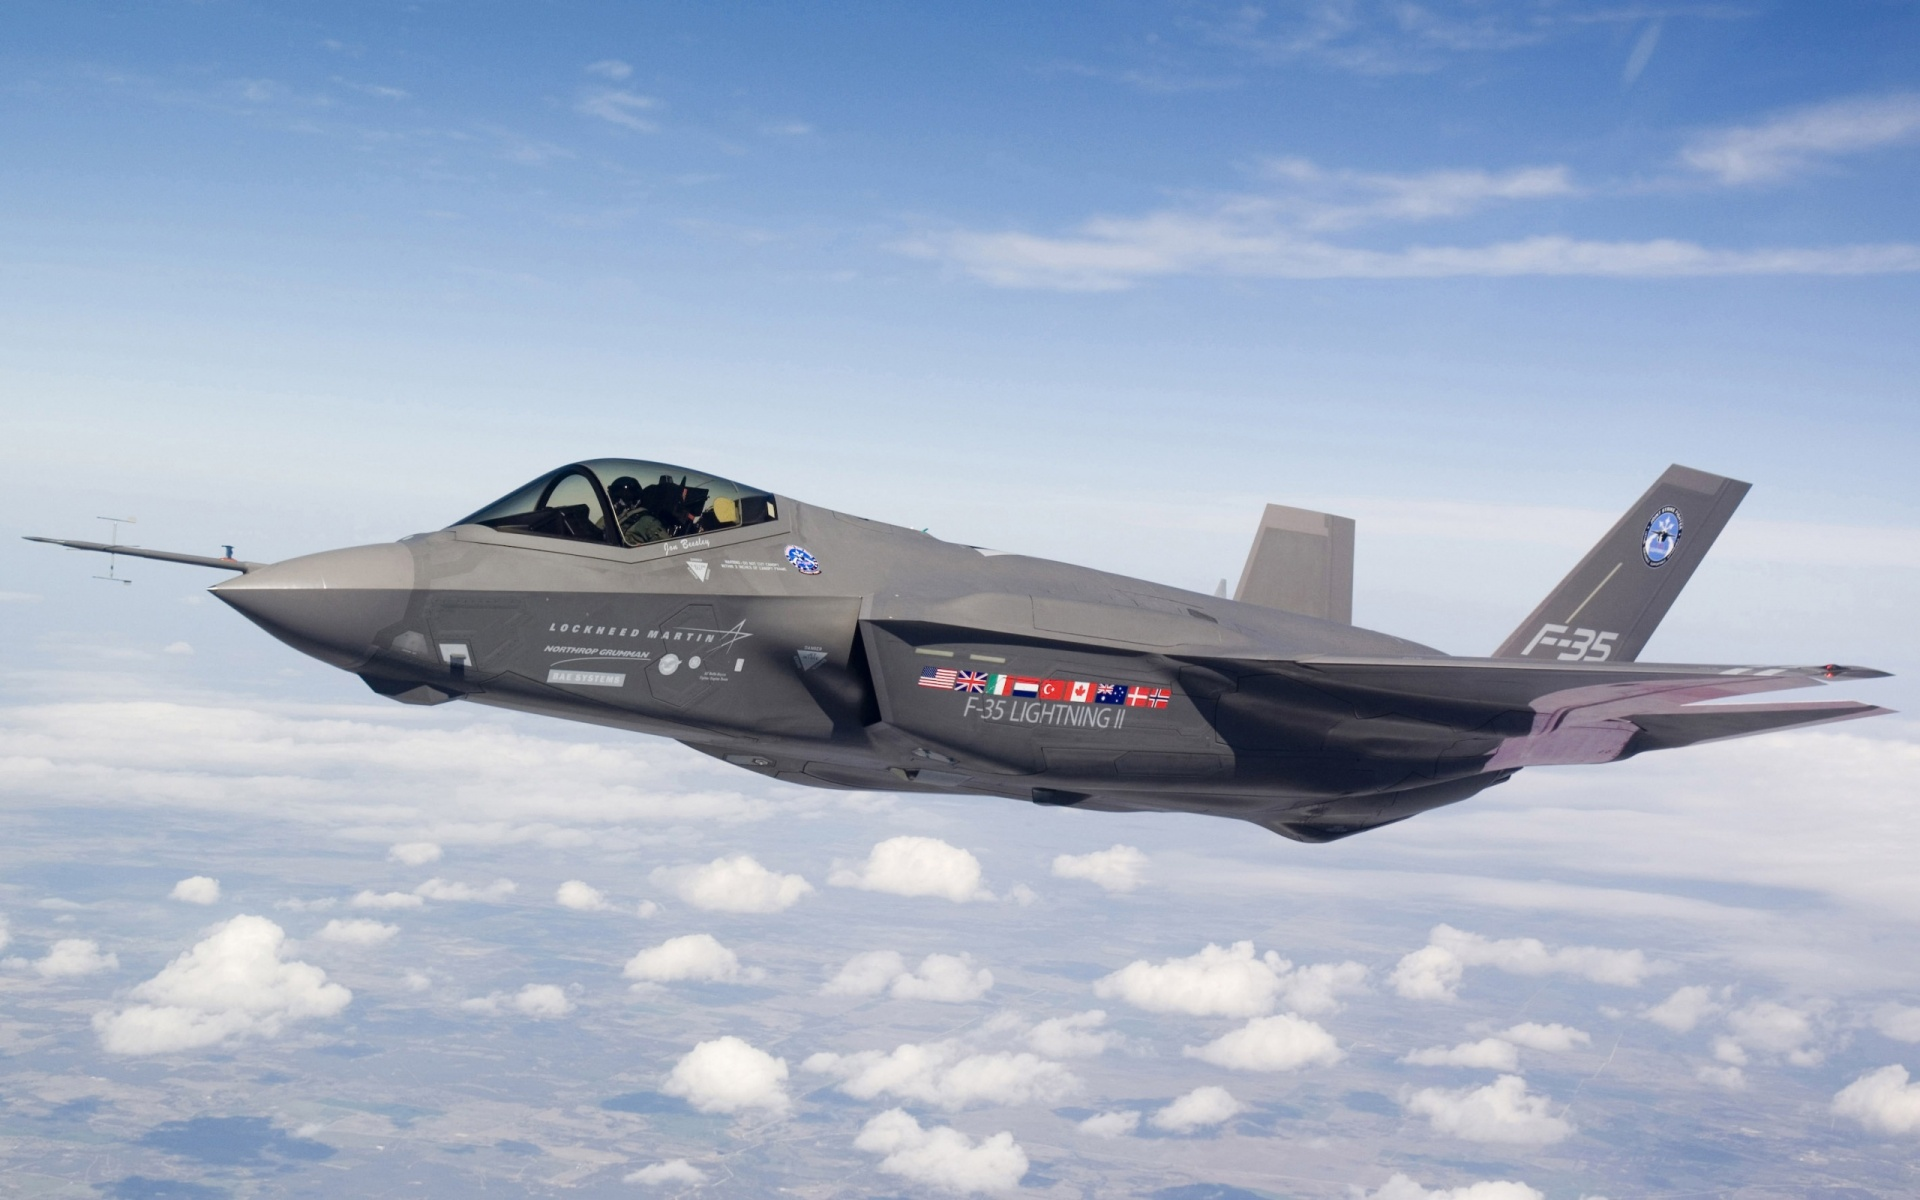 The Lockheed Martin F-35 Lightning II.